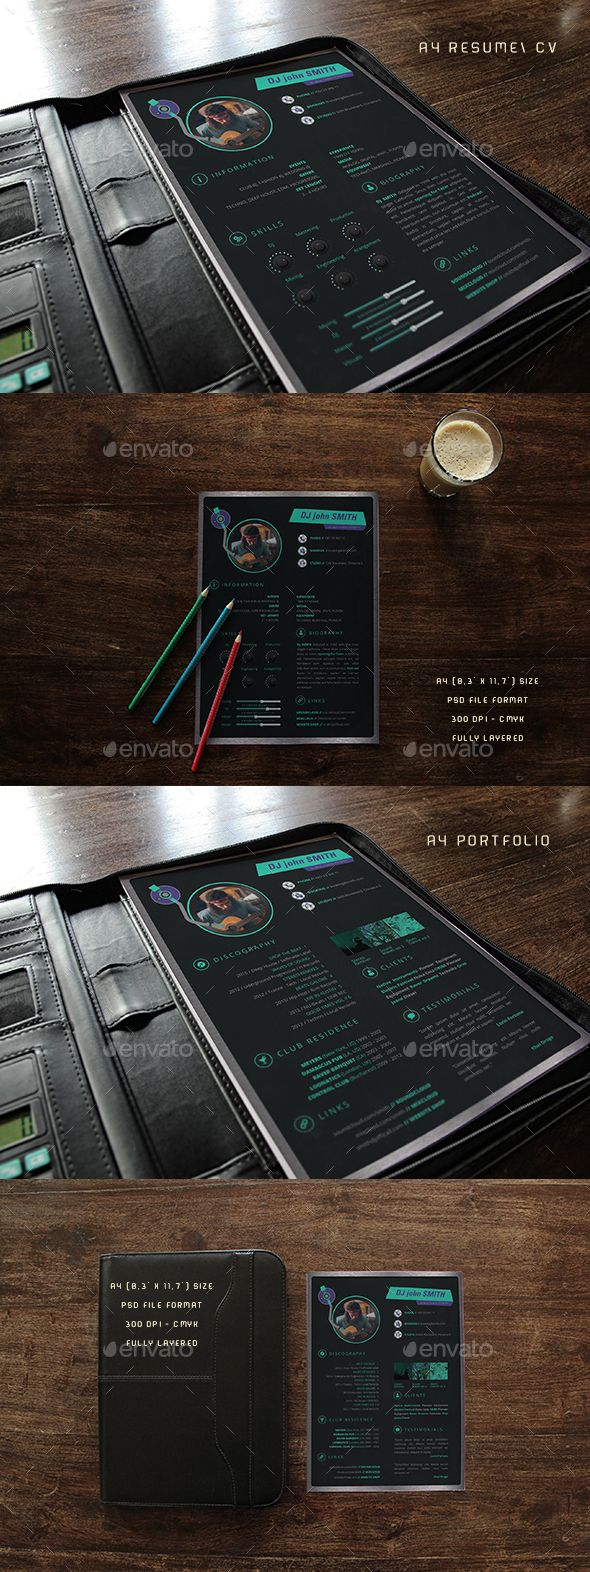 DJ Resume Press Kit by Fadeink DJ Resume Press Kit DJ Resume Press Kit is a modern, clean and professional resume cv template best suited for djs, music producer